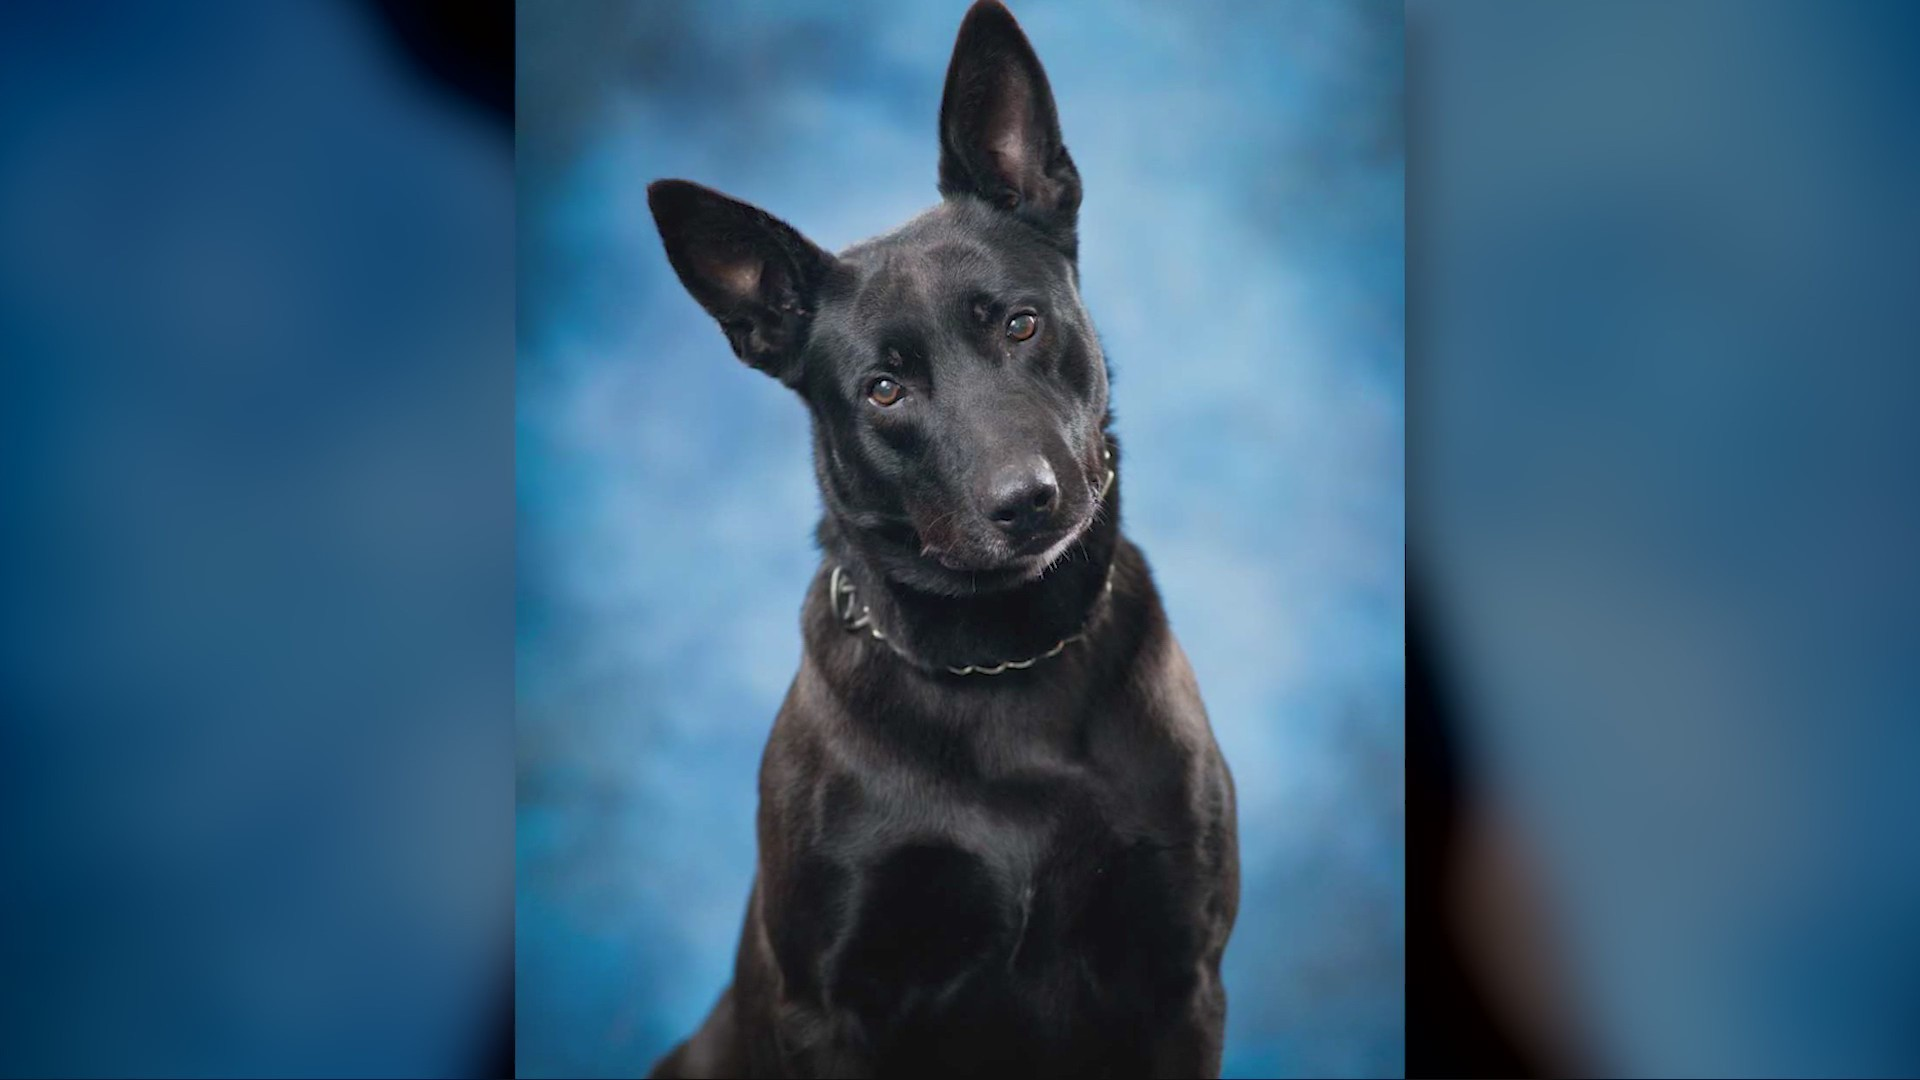 Charleston Police say goodbyes to K-9 Officer Jux